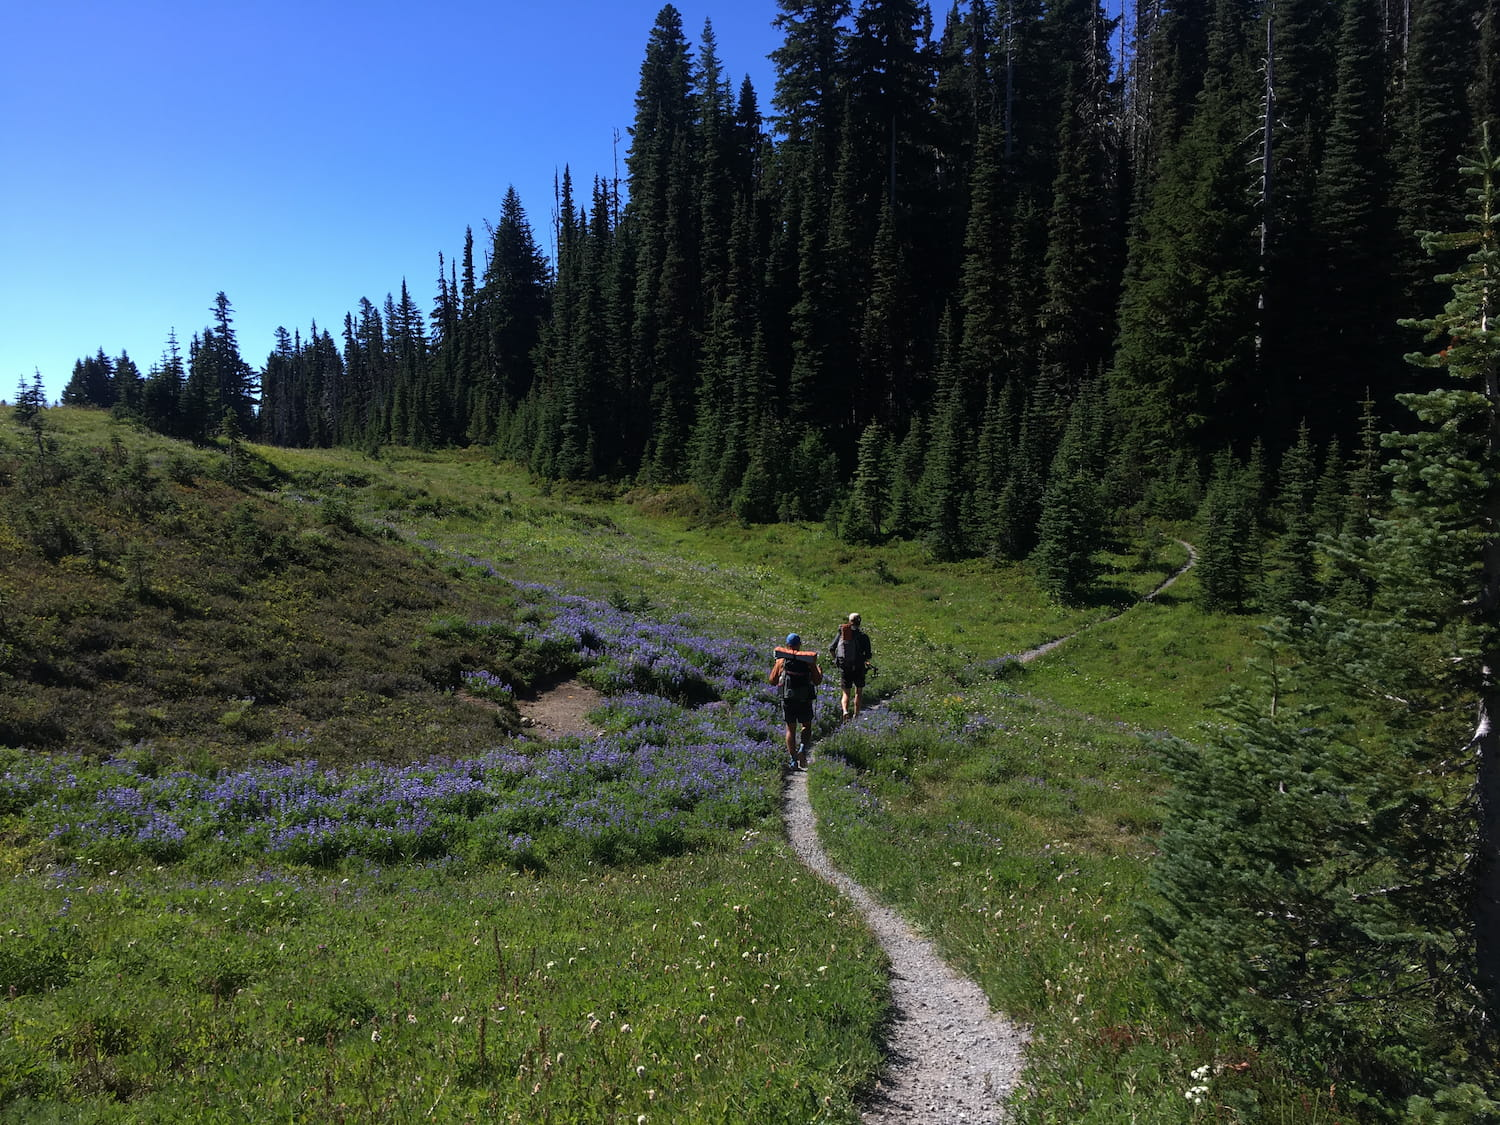 wildflowers and hikers along trail